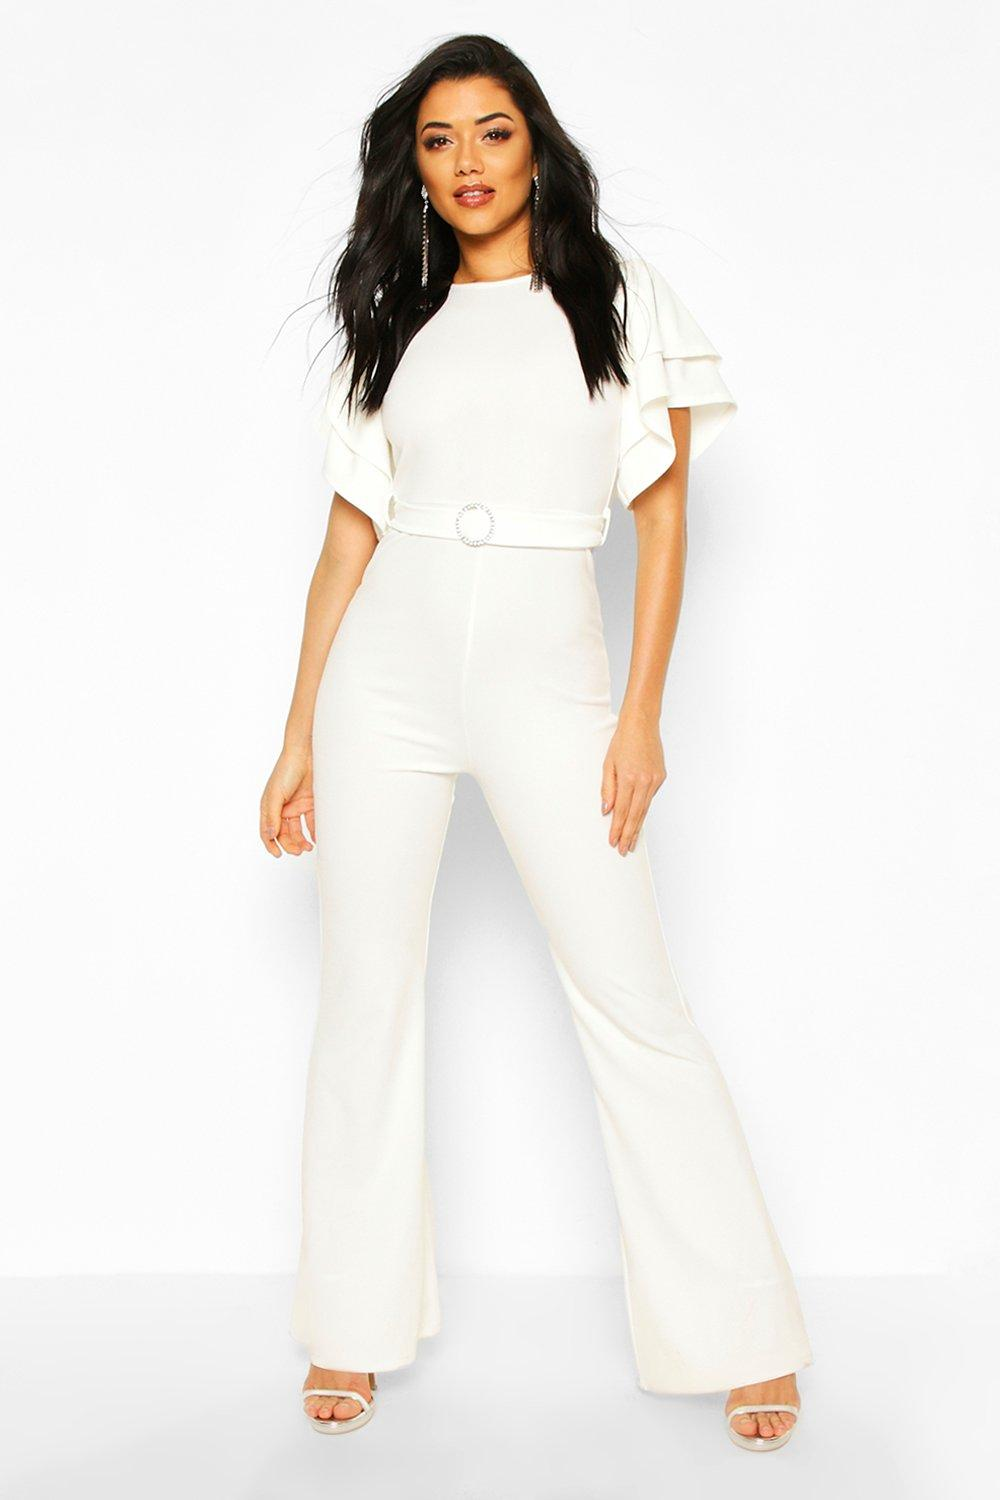 70s Jumpsuit | Disco Jumpsuits, Sequin Rompers Womens Layered Puff Sleeve Jumpsuit - white - 12 $16.00 AT vintagedancer.com